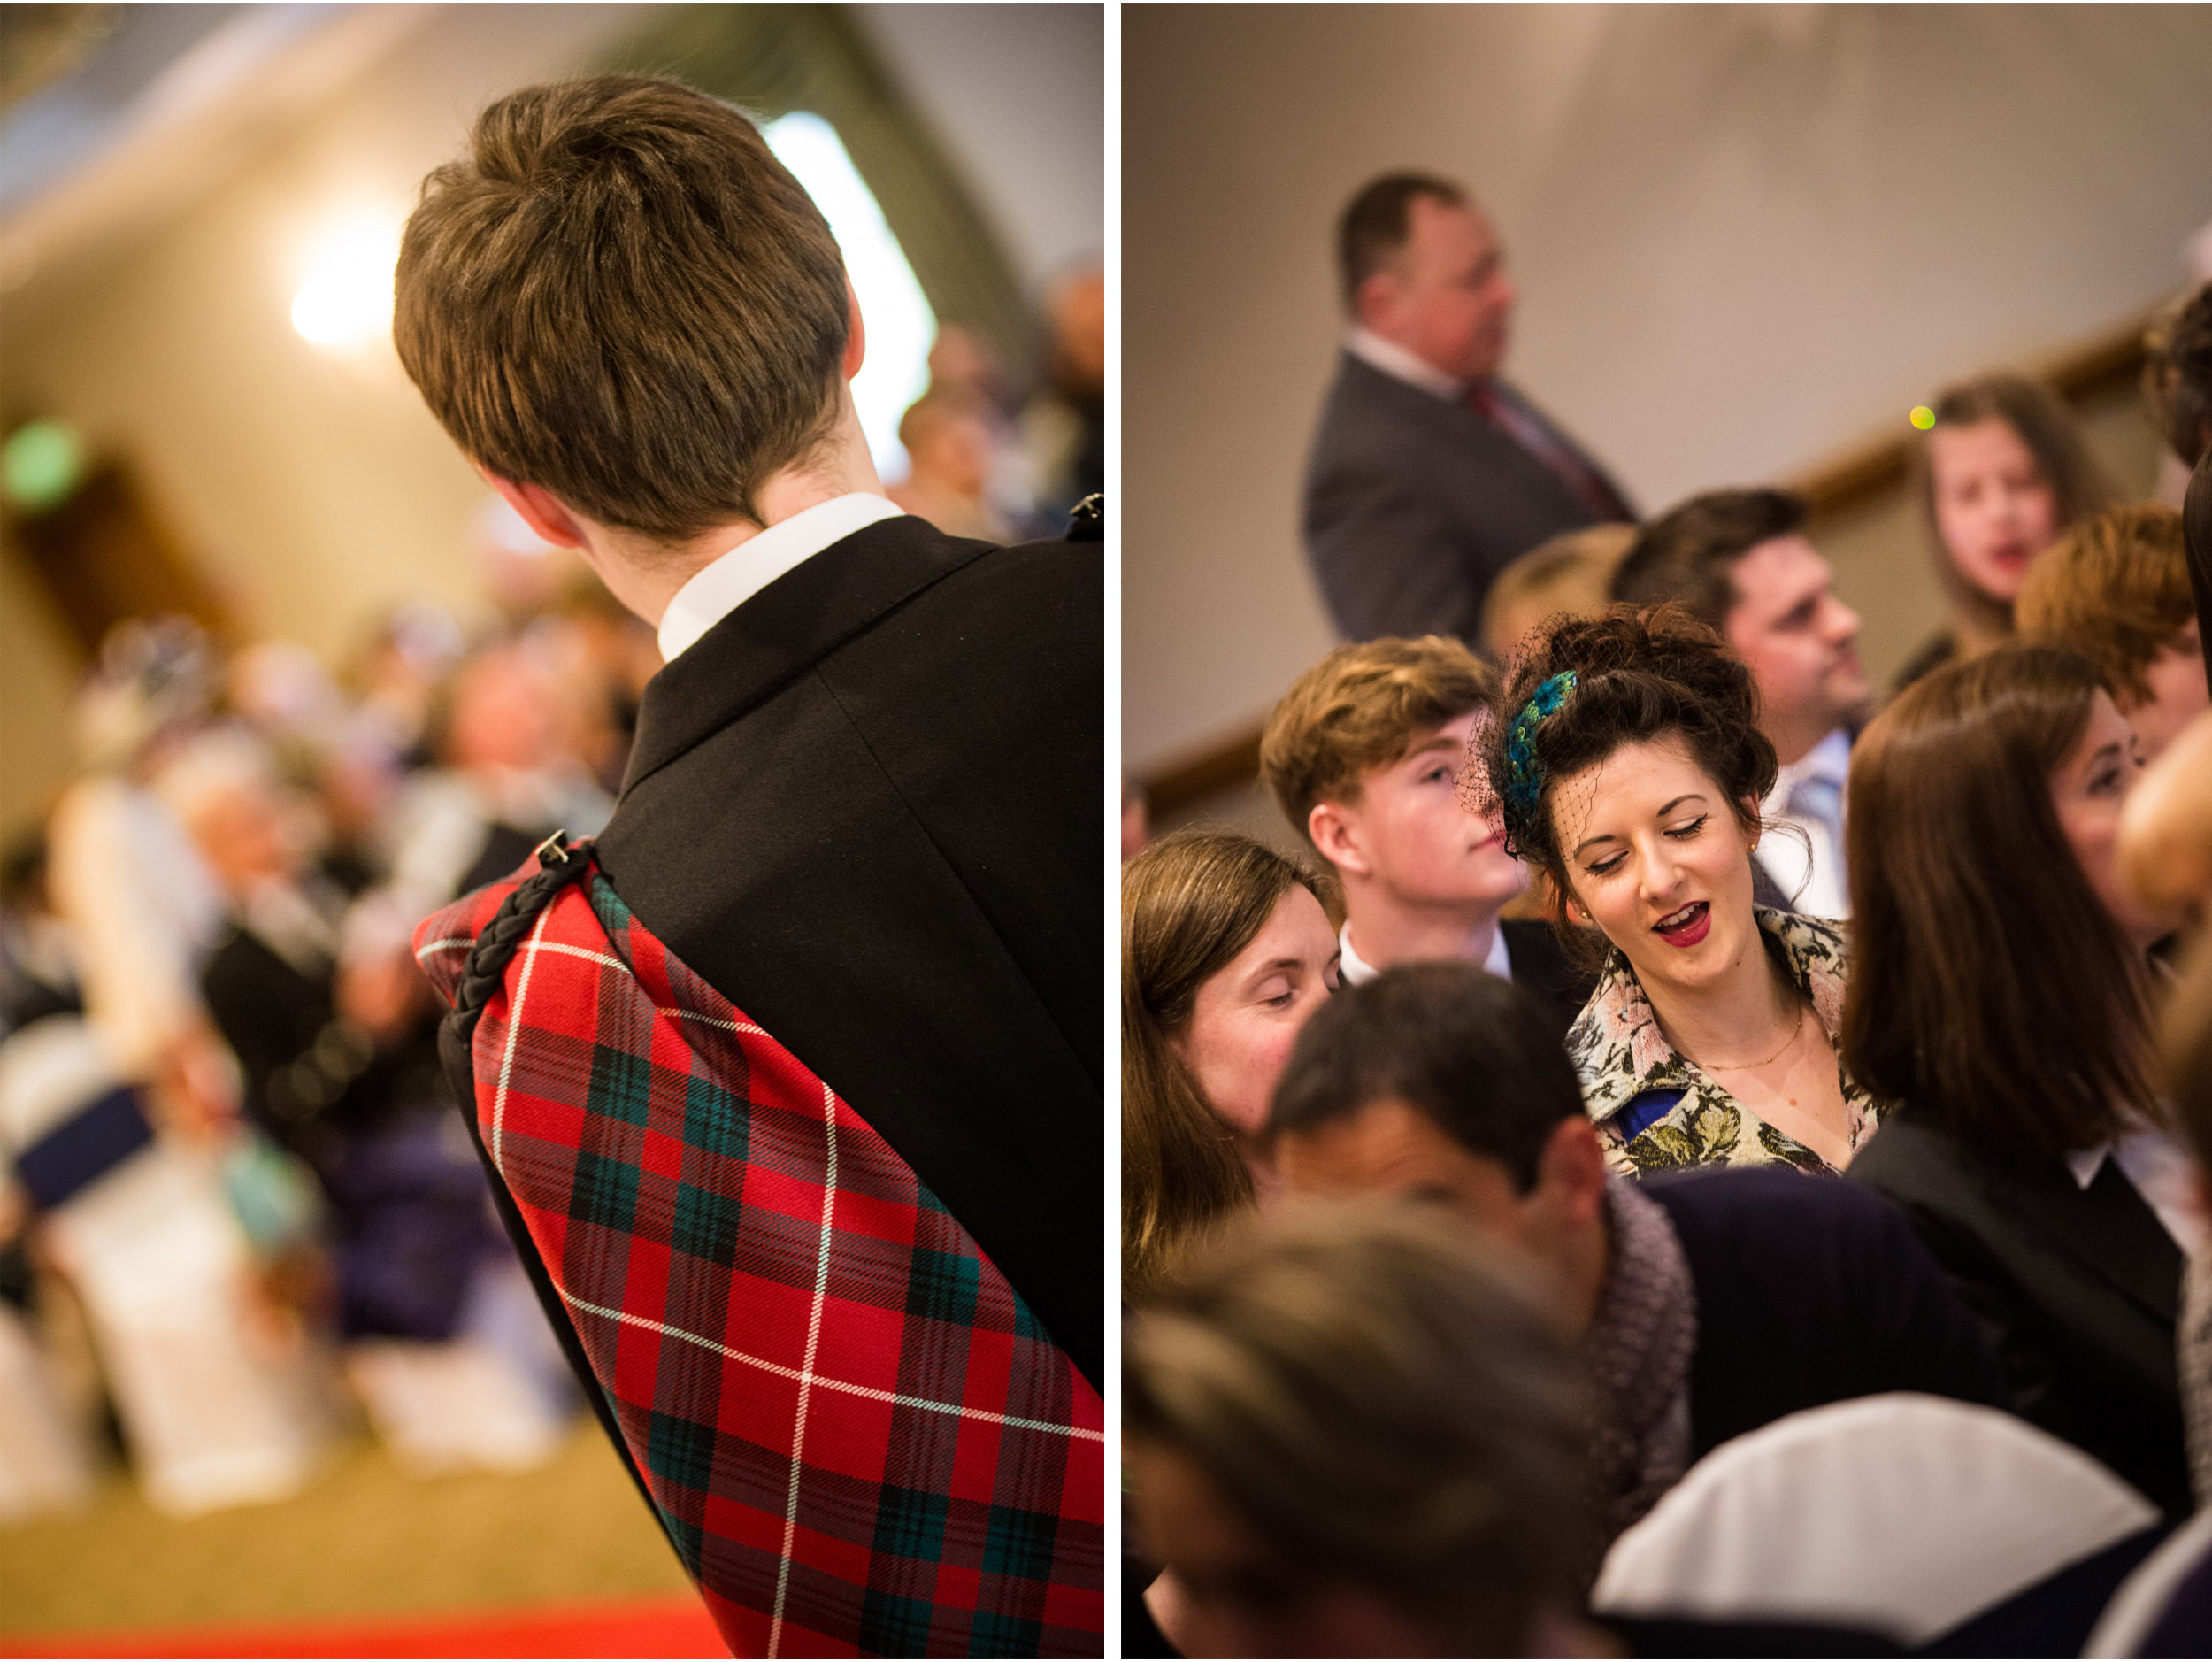 Sophie and Ryan's wedding-29.jpg